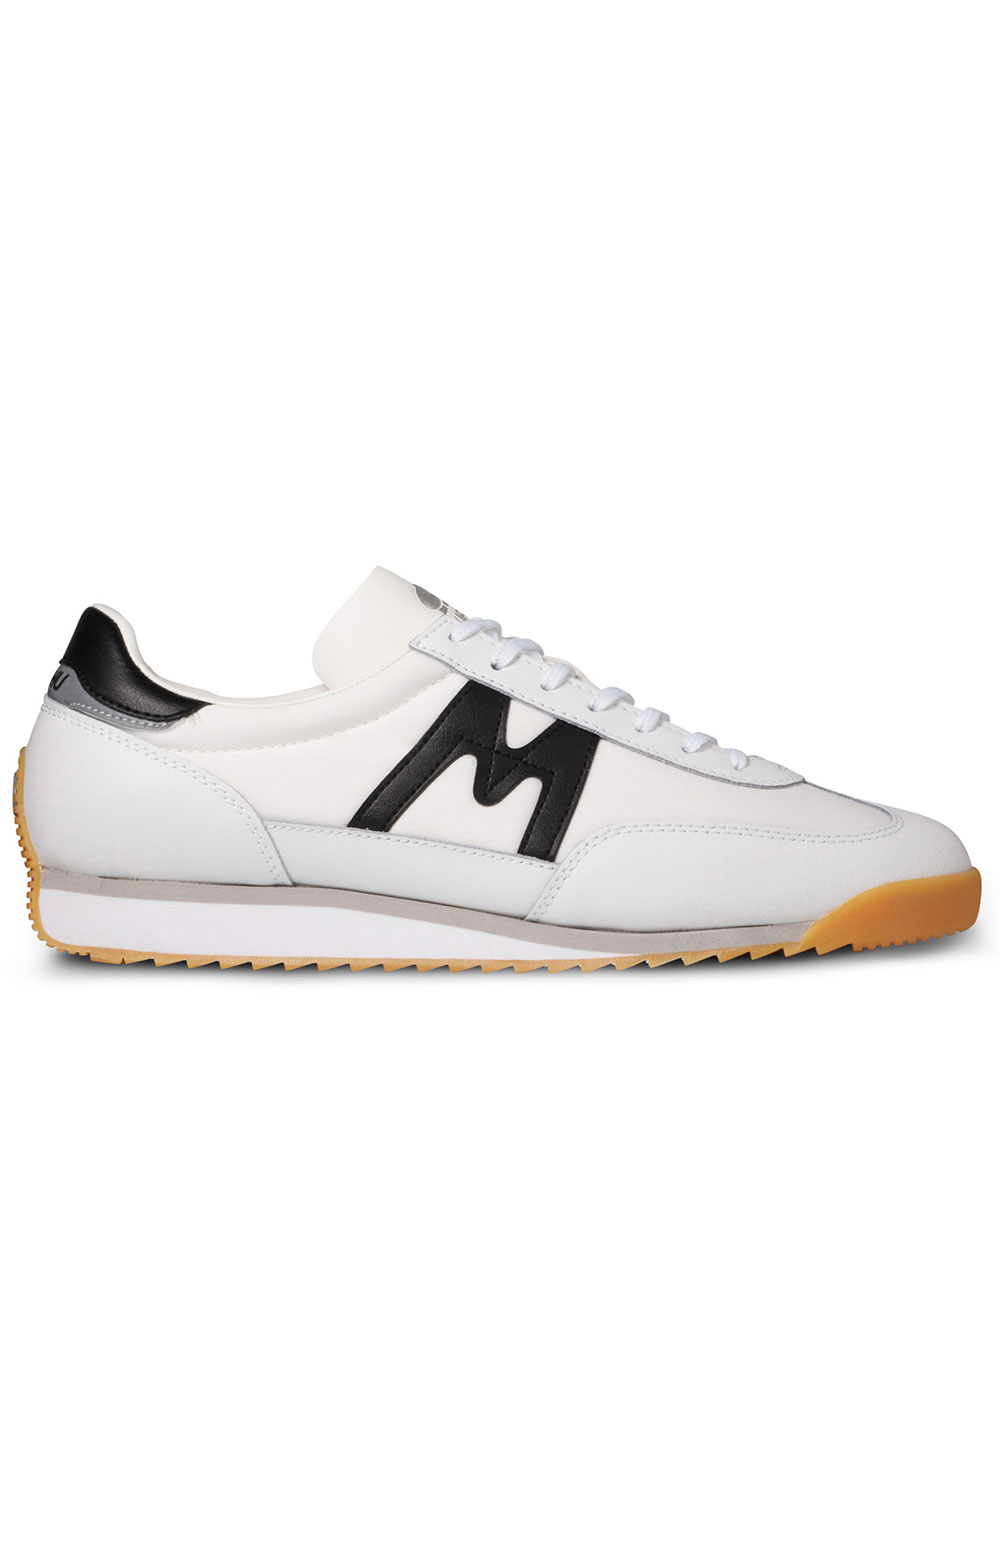 (F805015) Mestari Shoes - White/Black